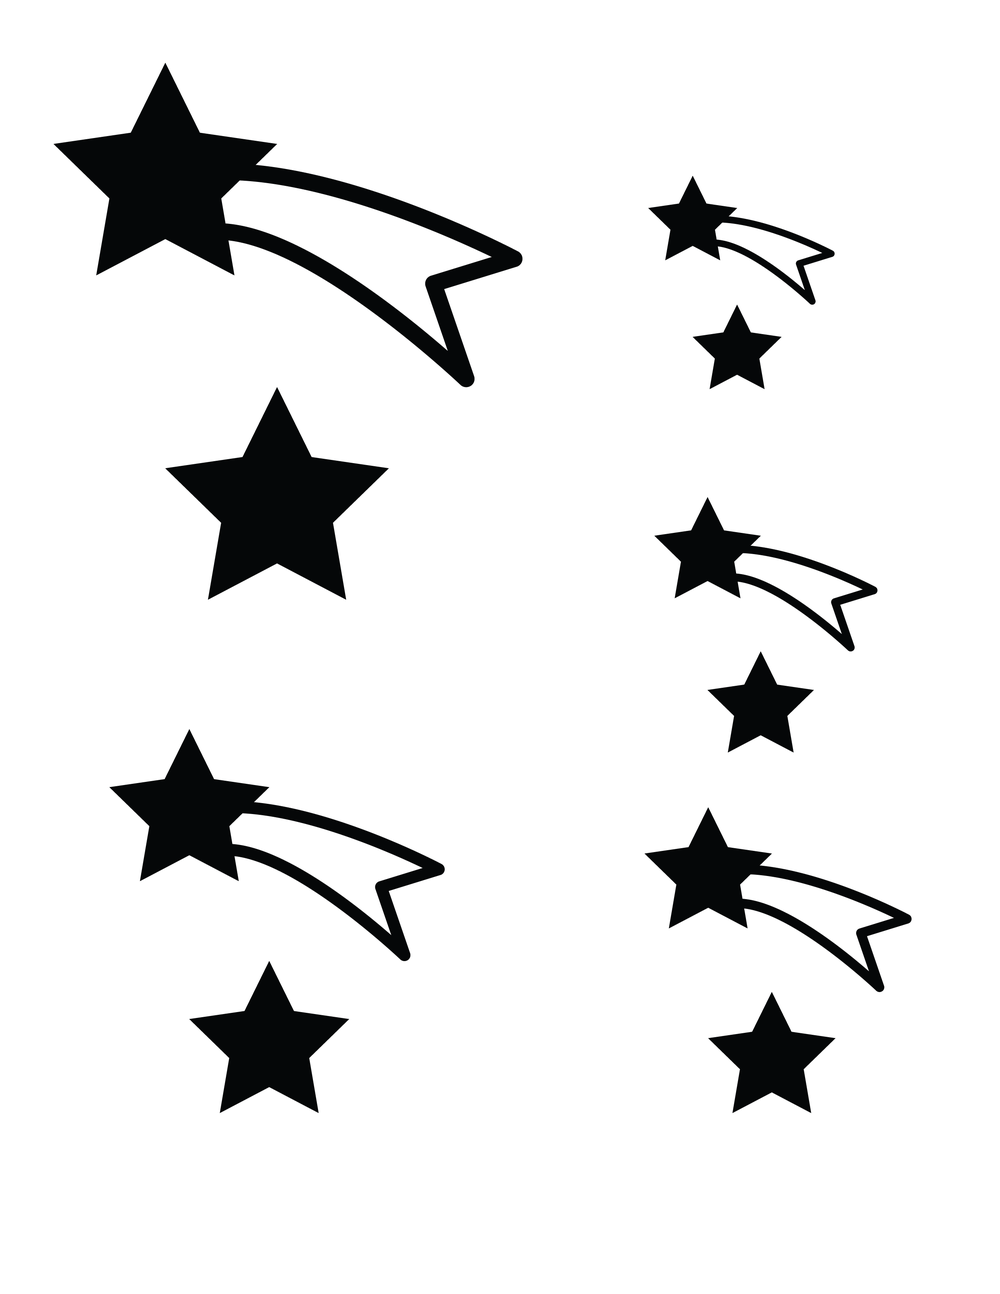 stars-01.png